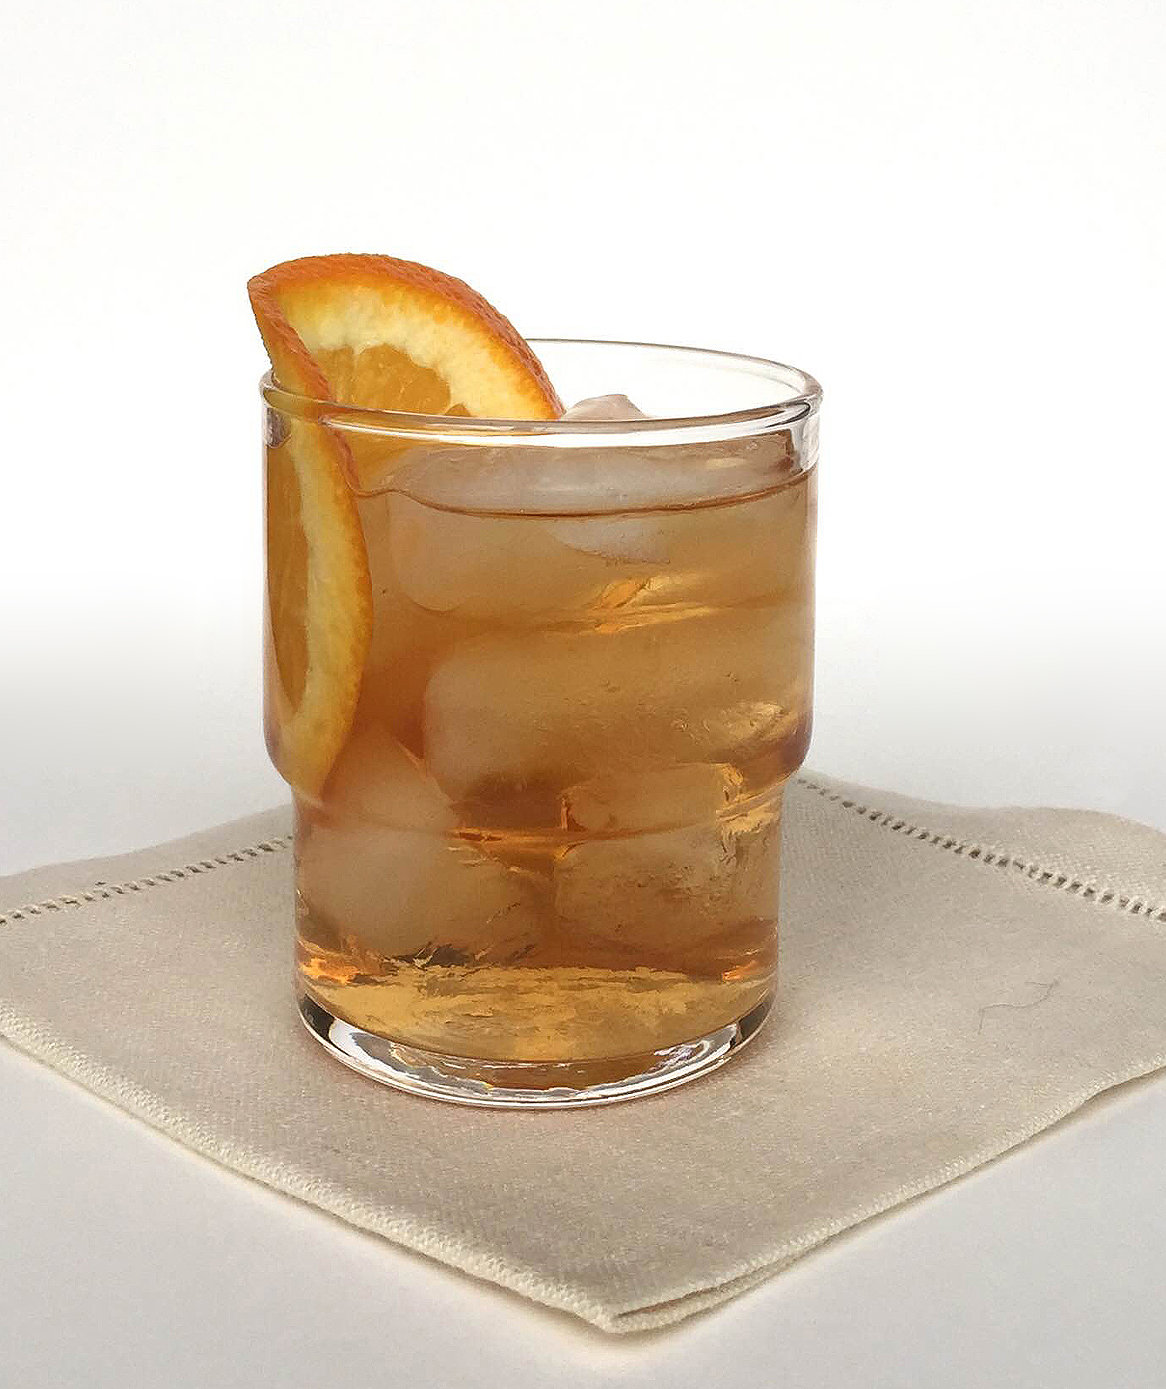 5 classic cocktail recipes everyone should know real simple. Black Bedroom Furniture Sets. Home Design Ideas